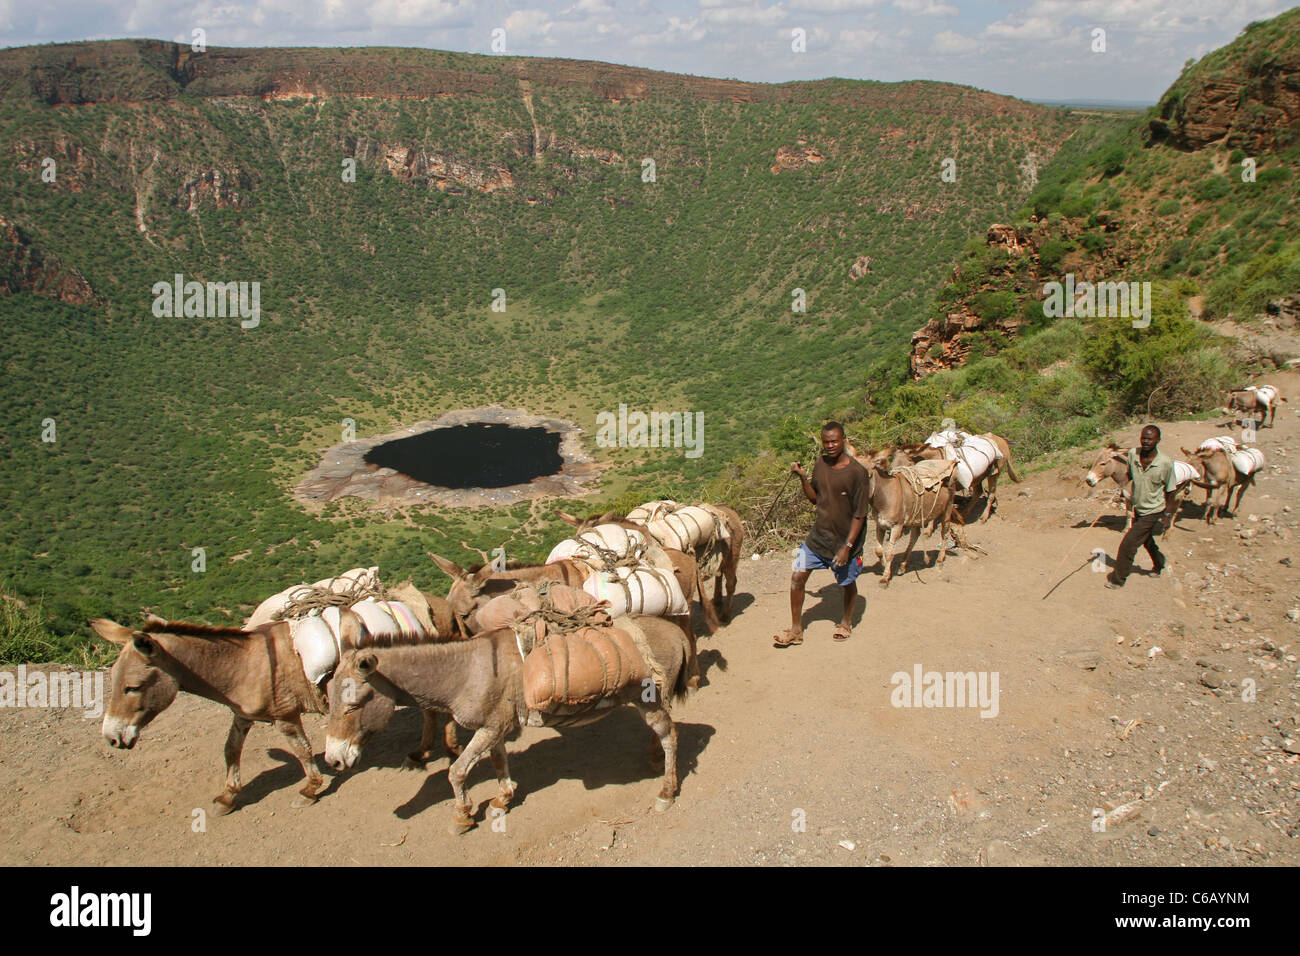 Chew Bet Crater and caravan in Southern Ethiopia - Stock Image